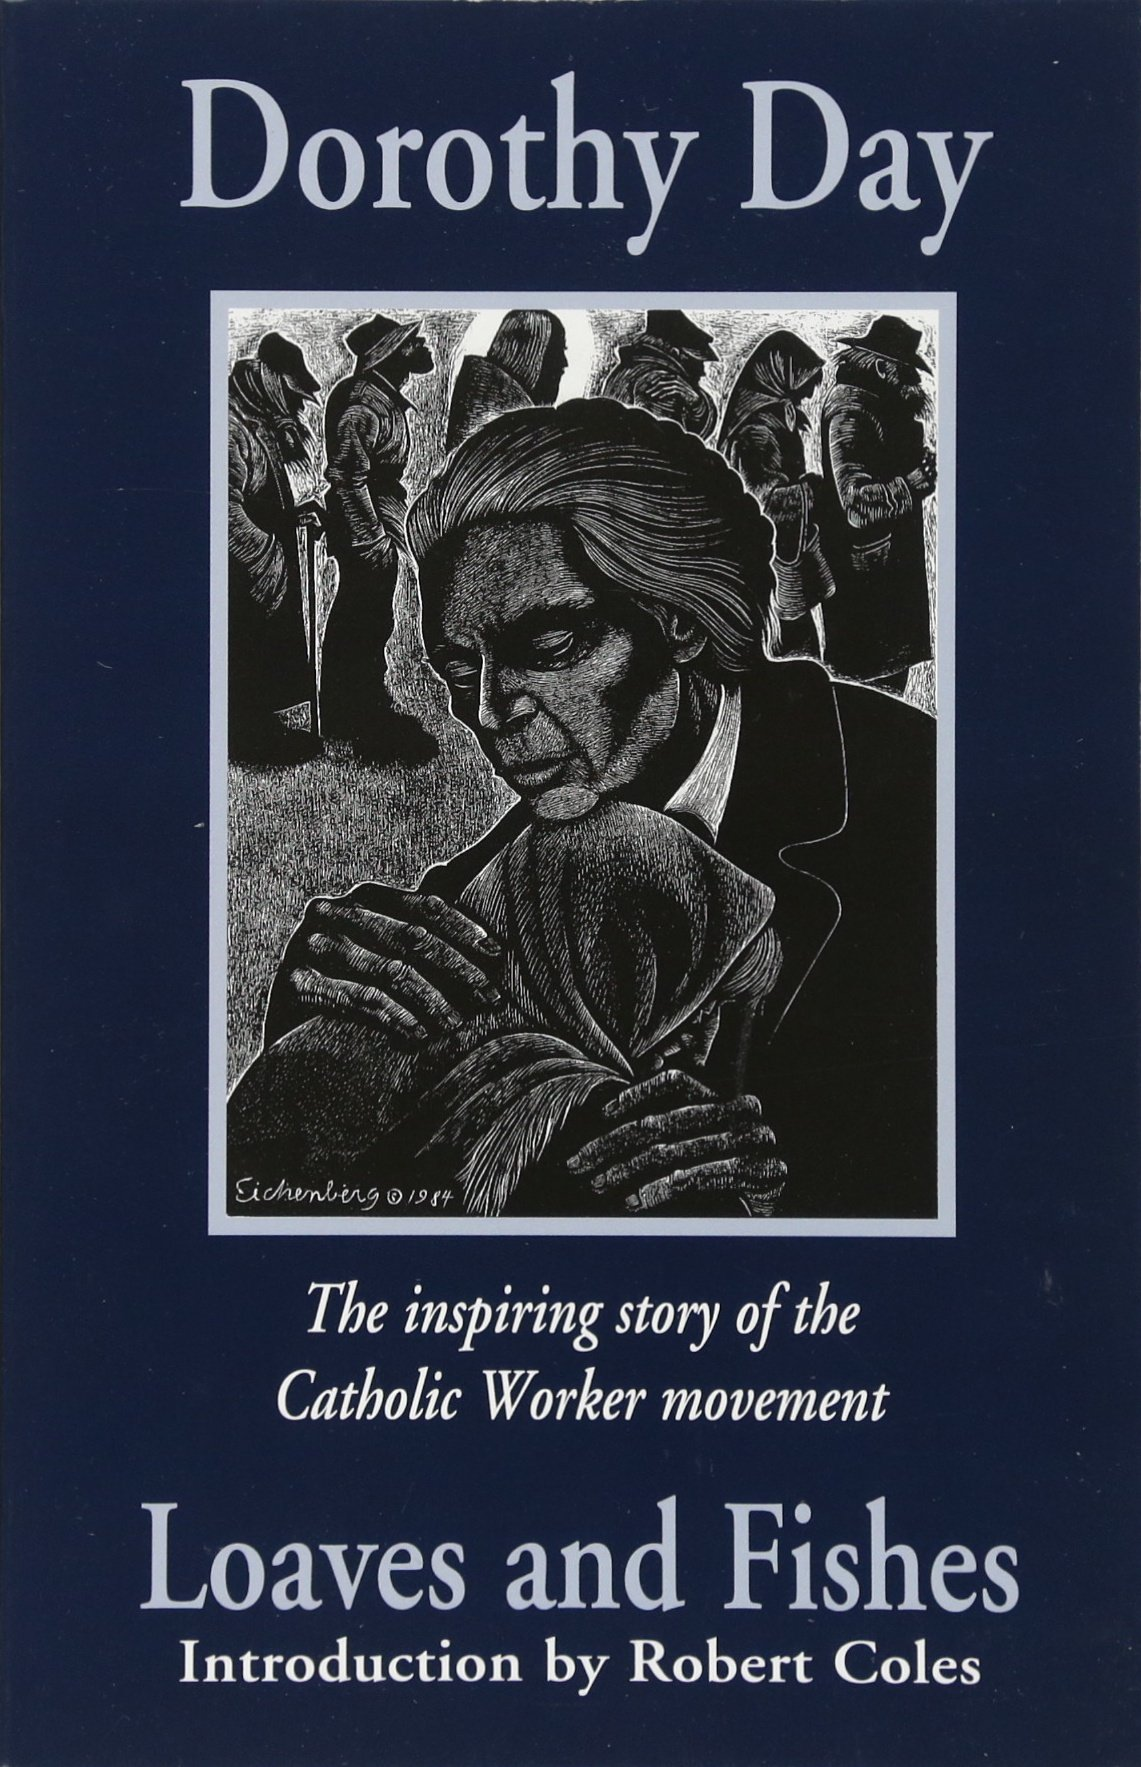 Loaves and fishes the inspiring story of the catholic worker loaves and fishes the inspiring story of the catholic worker movement dorothy day robert coles 9781570751561 amazon books fandeluxe Document